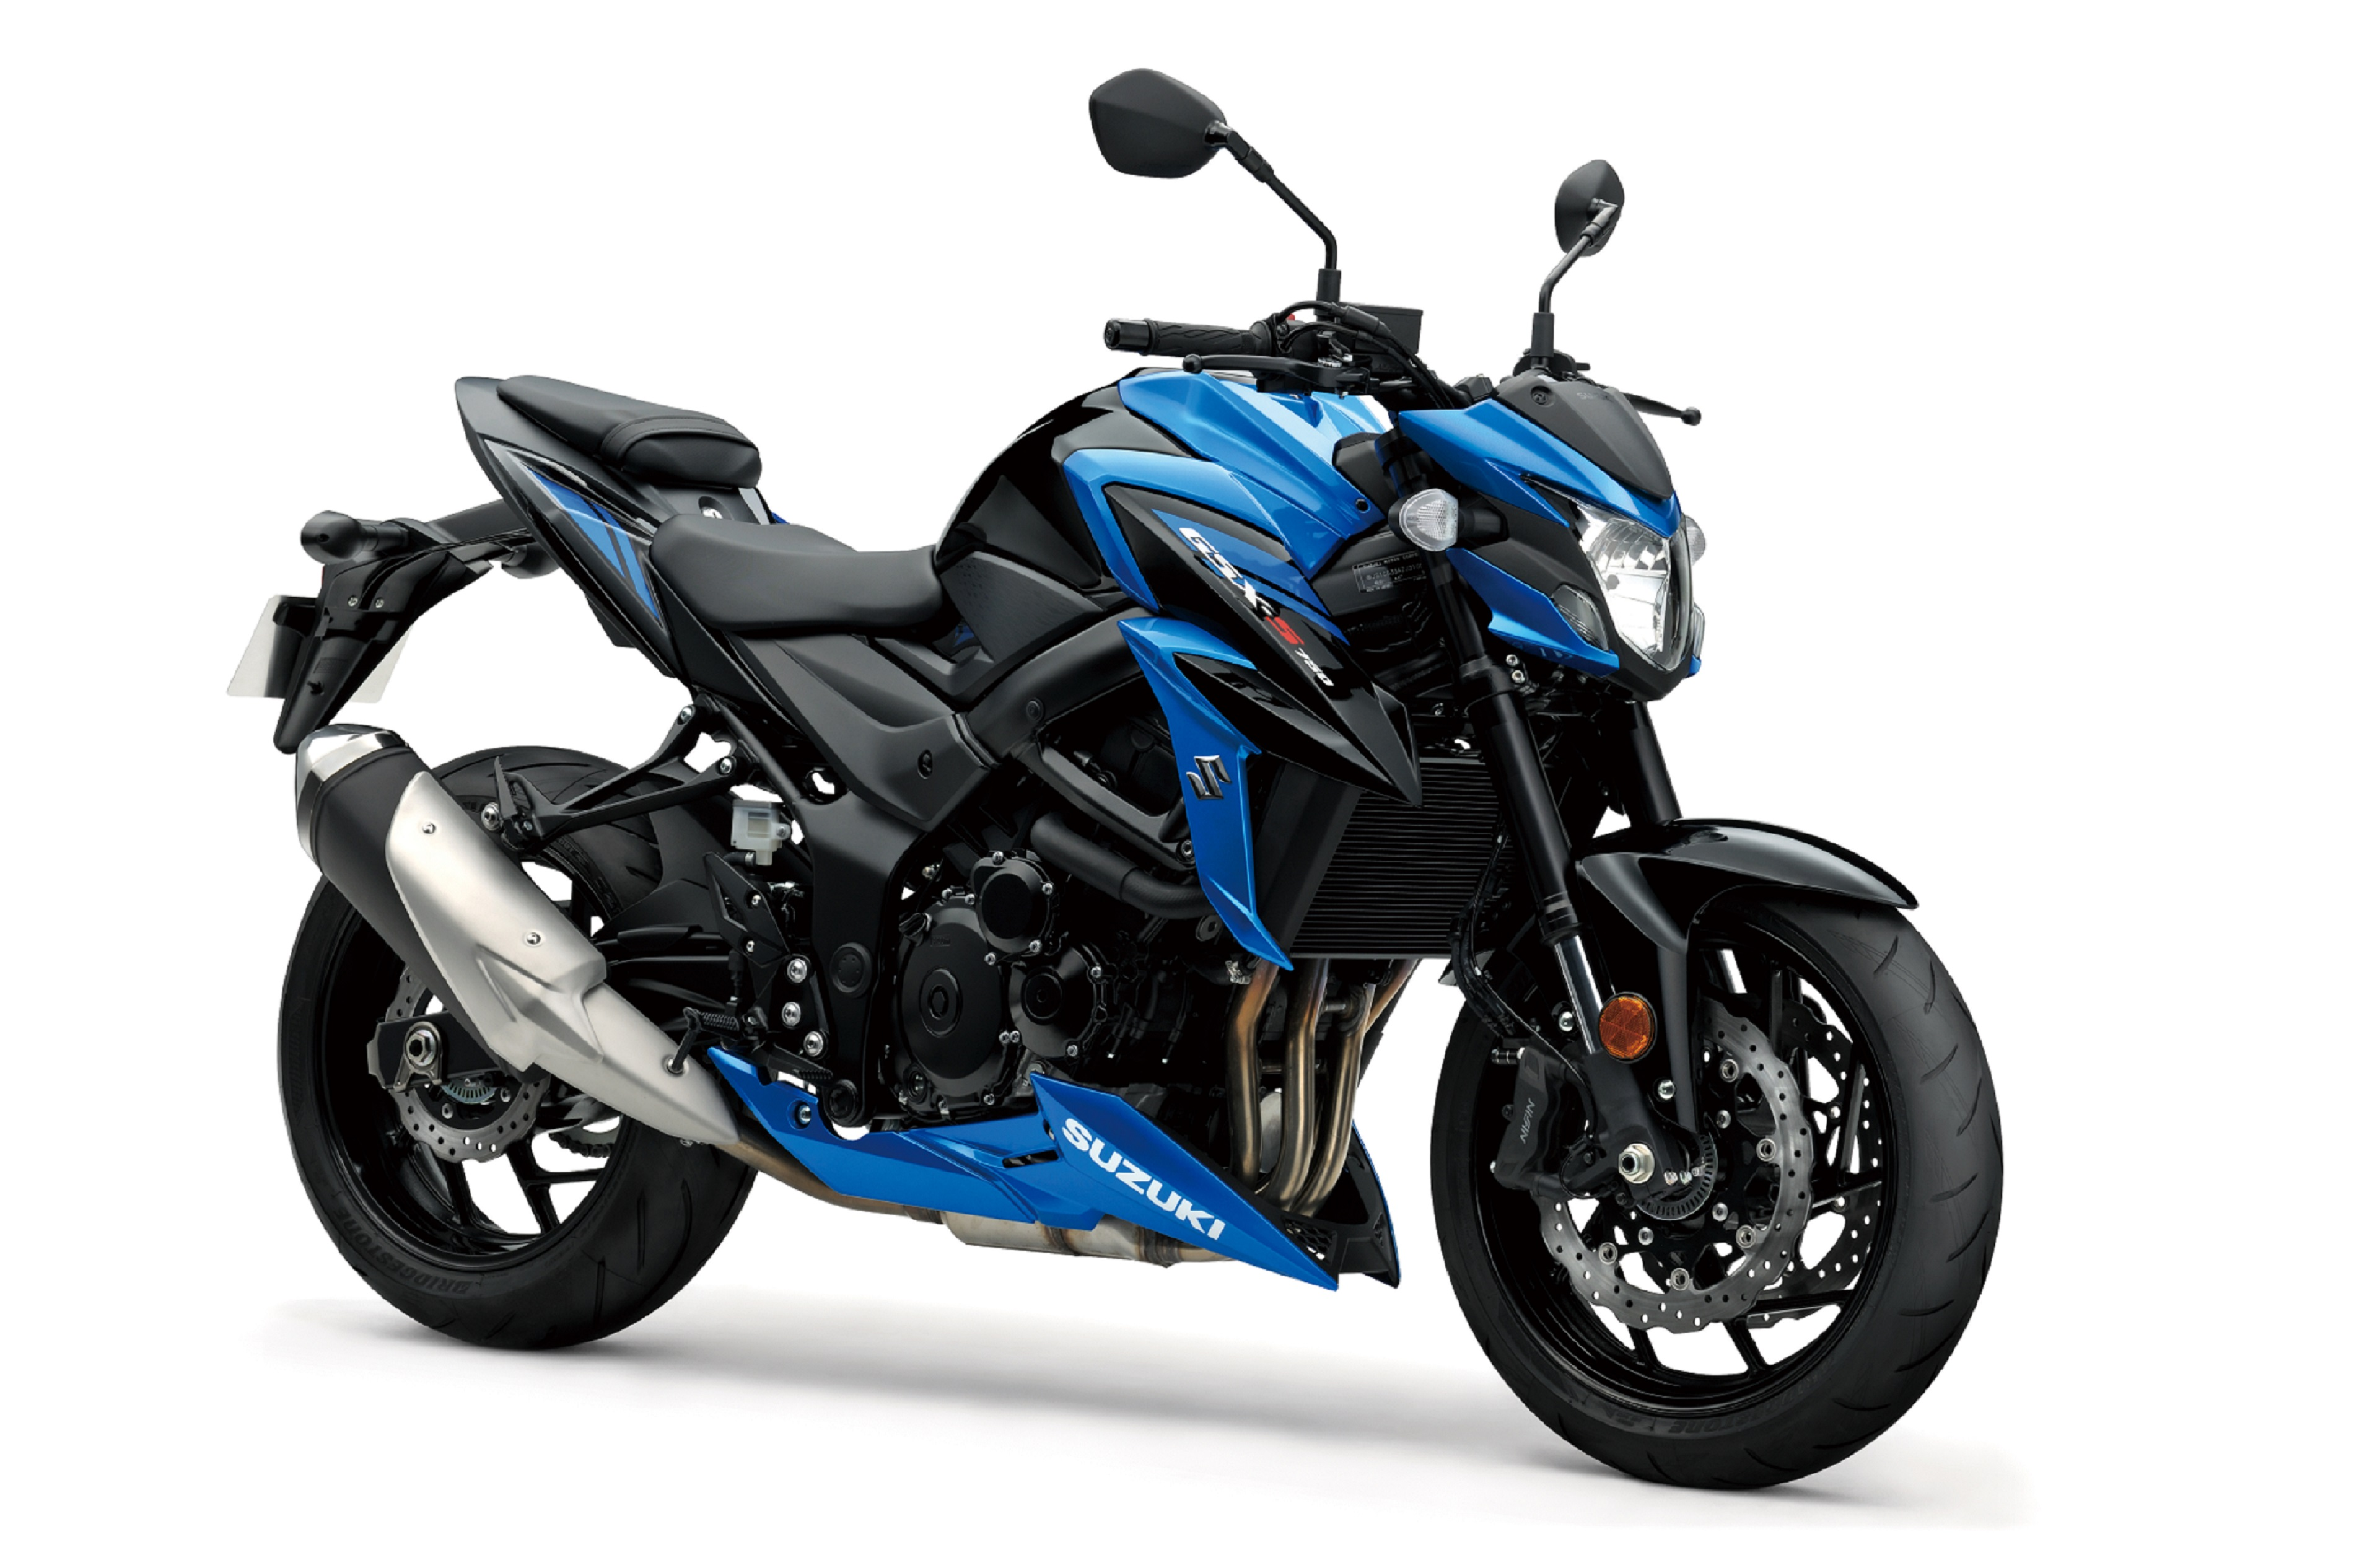 Suzuki Gsx S750 Launched In India At Inr 7 45 Lakhs